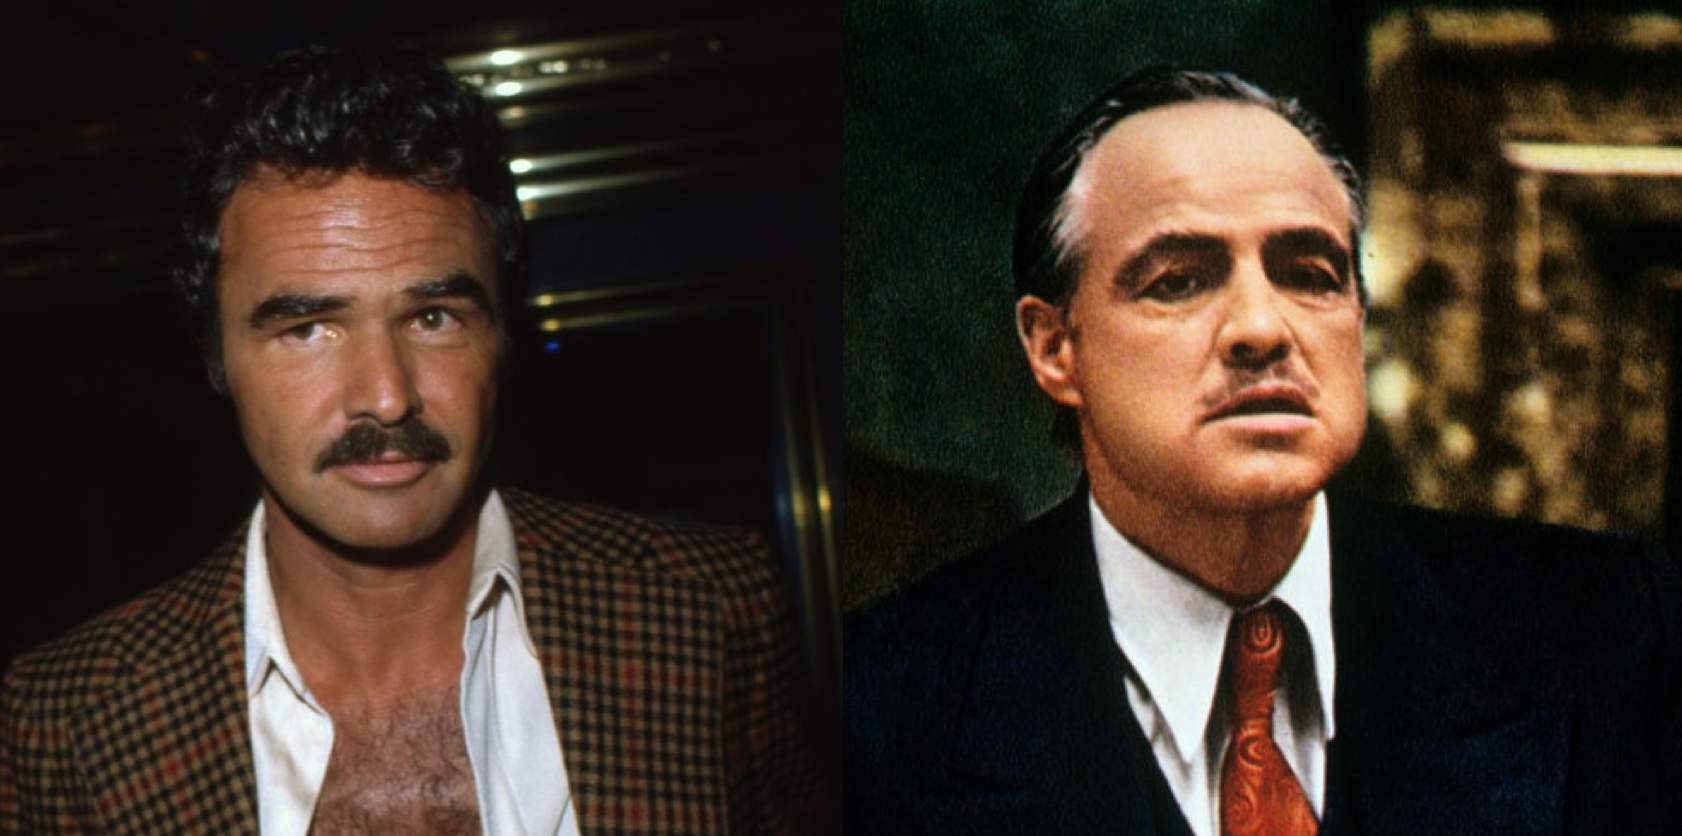 Burt Reynolds Was Almost Michael Corleone in The Godfather—But Marlon Brando Stopped It